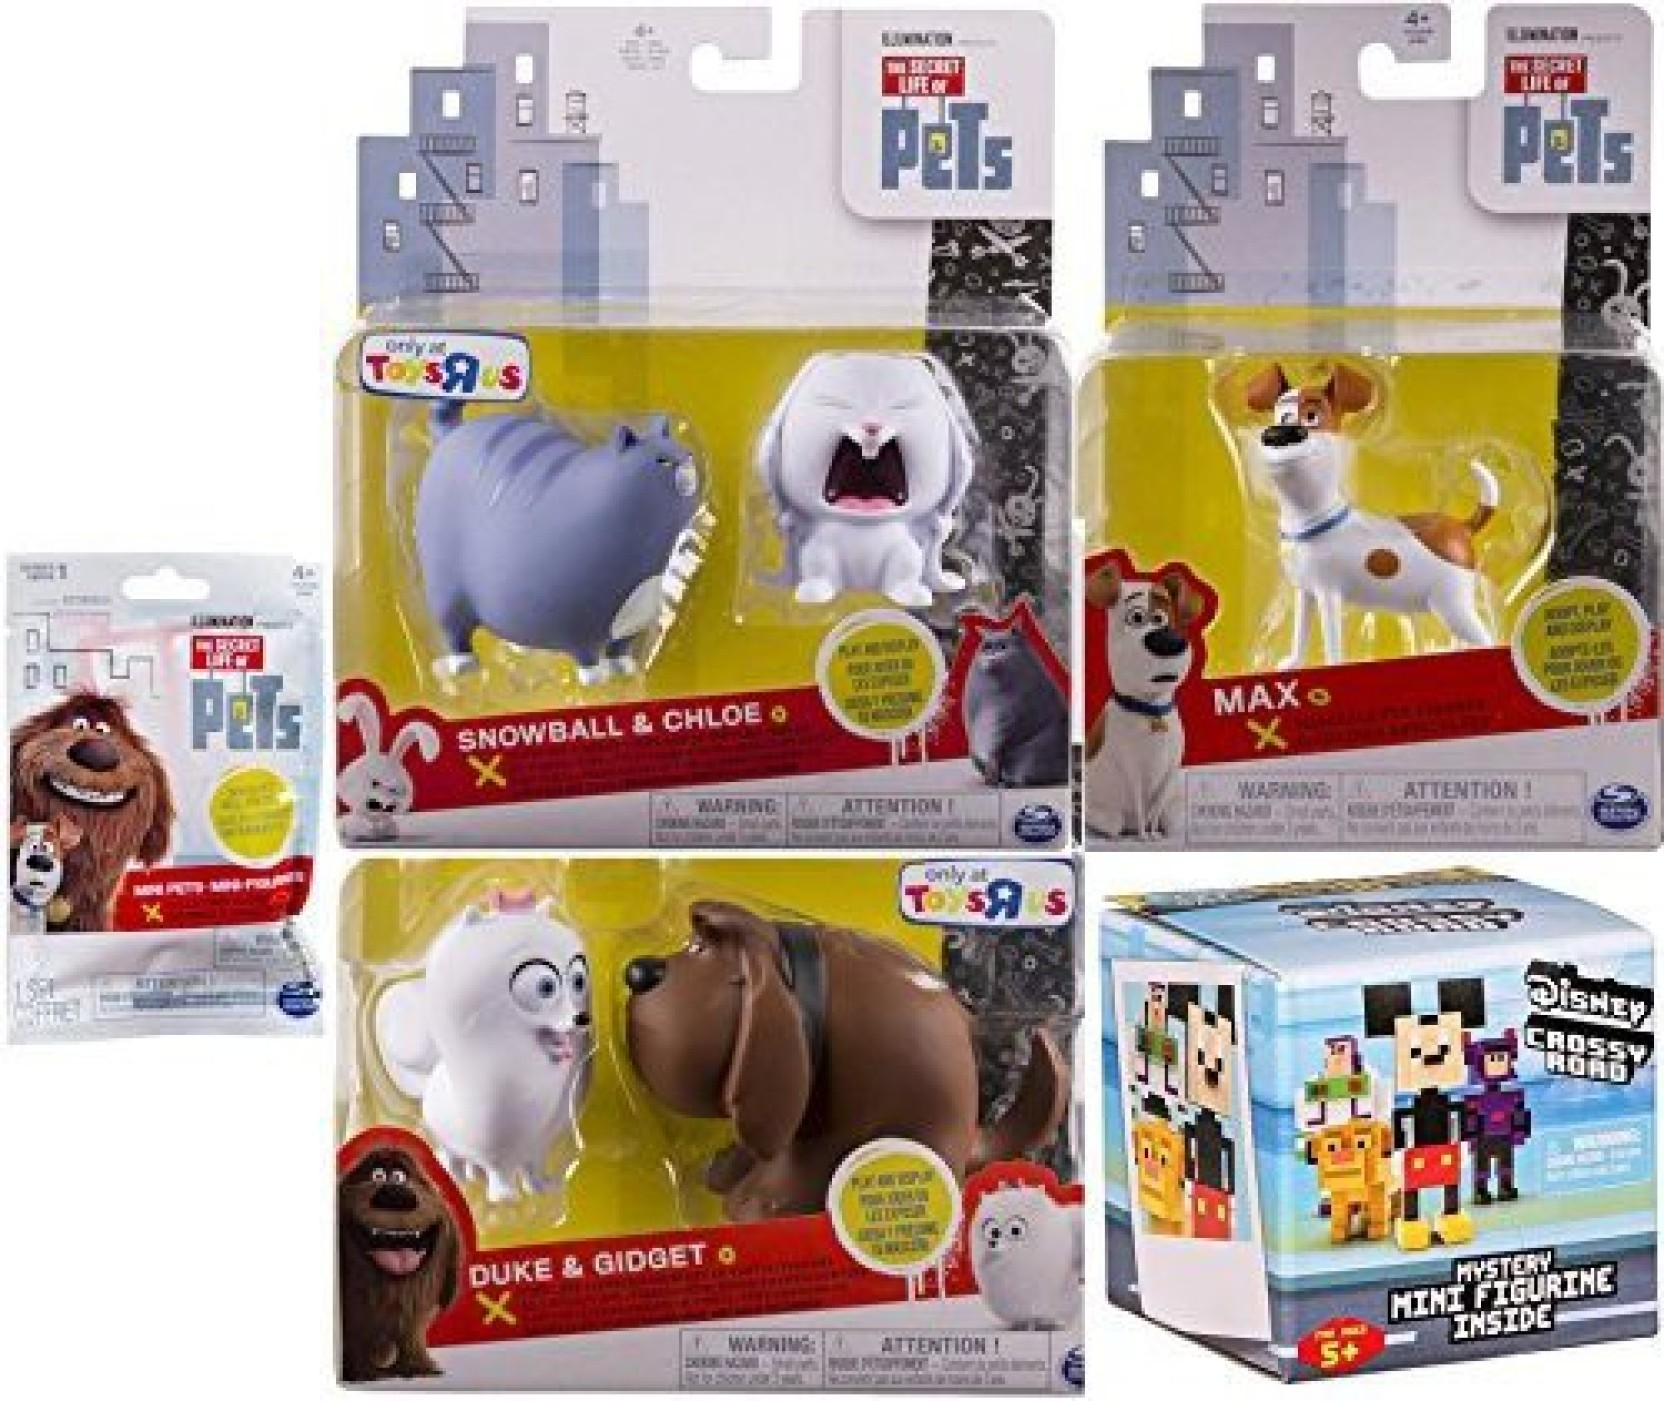 a85e1f73ddd4 AYB Products The Secret Life of Pets Figure Set Max the Dog + ...